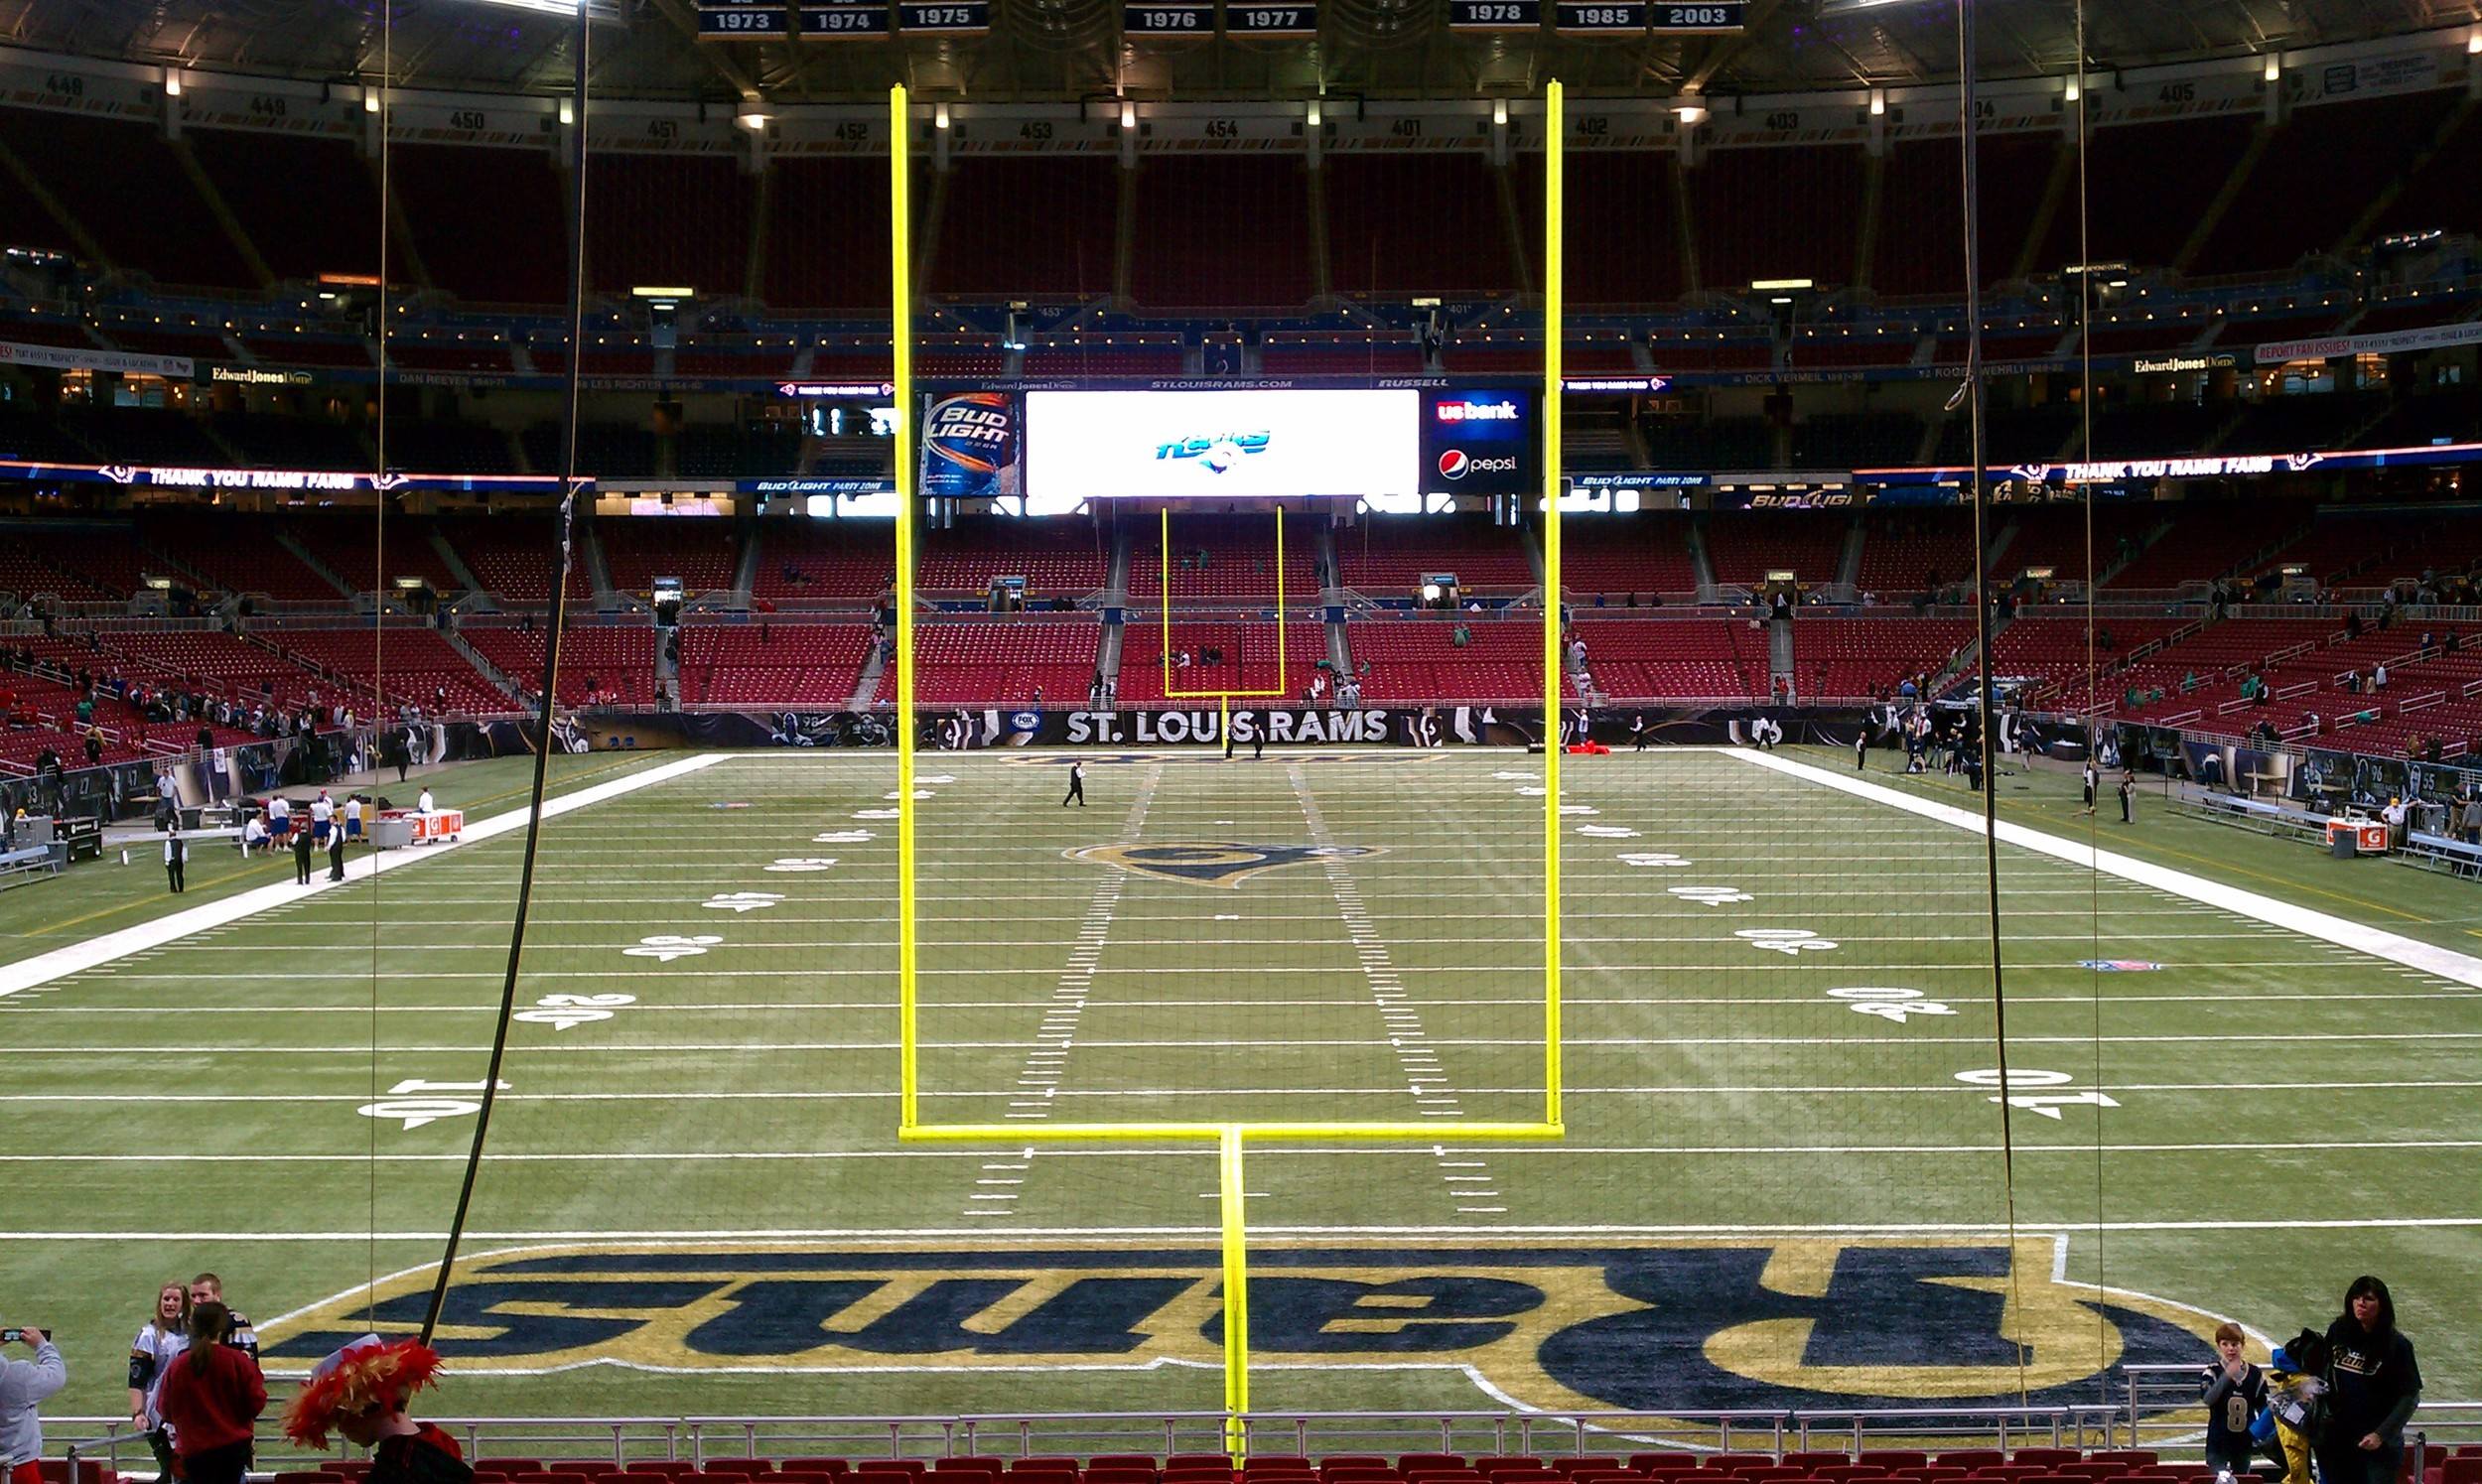 """""""Edward Jones Dome endzone view"""" by Clstds - Own work. Licensed under CC BY-SA 3.0 via  Wikimedia Commons"""